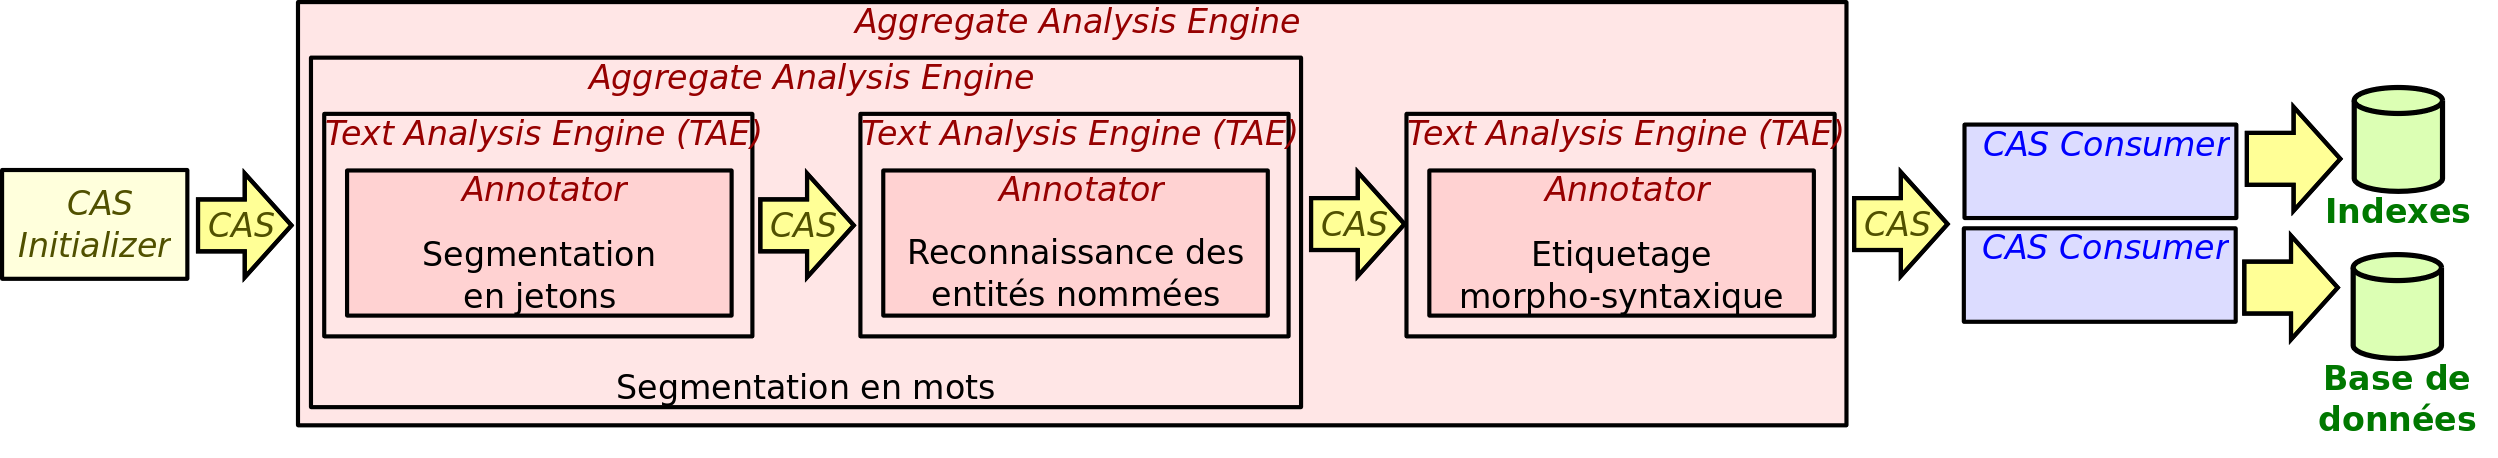 CAS Consumer Contexte et problématique Common Analysis System Consumer (CAS Consumer) Collection Reader Collection Processing Engine (CPE) Utilisation de ressources d informations structurées